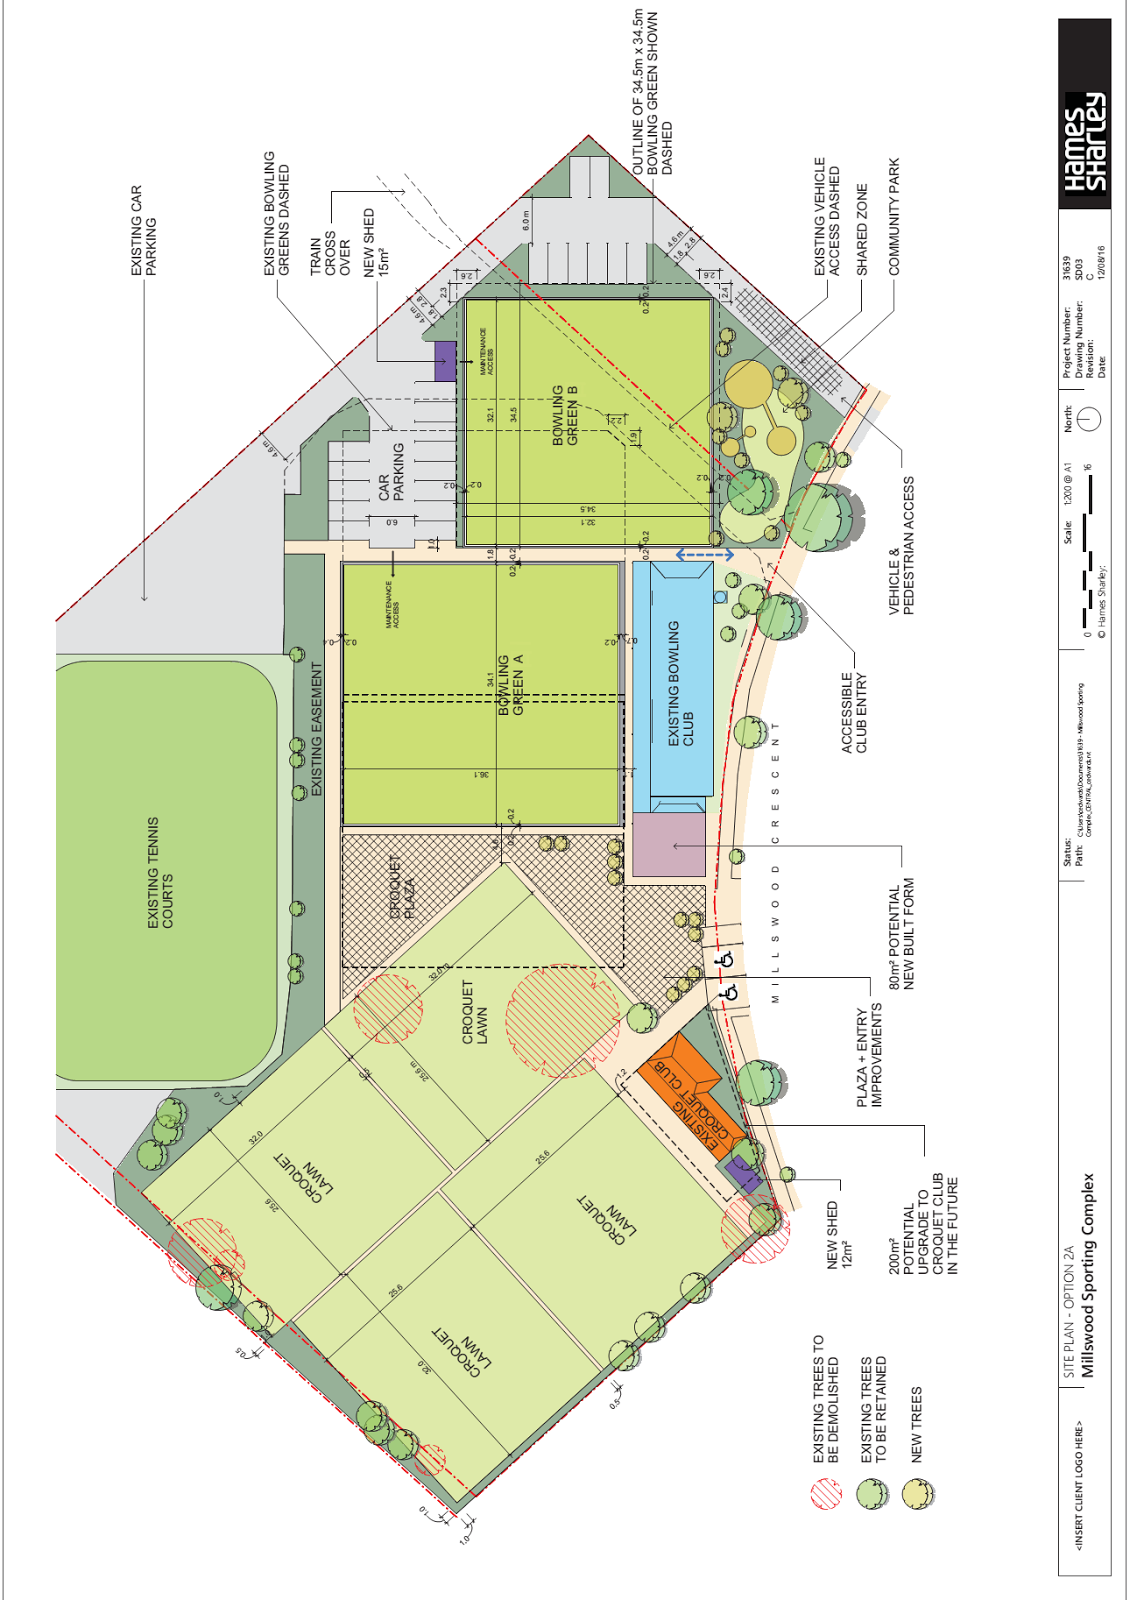 Jennie boisvert councillor for clarence park ward september 2016 the council meeting on the 12th september will be shown the most recent plan for the arrangement of the bowling greens and croquet lawns pooptronica Image collections